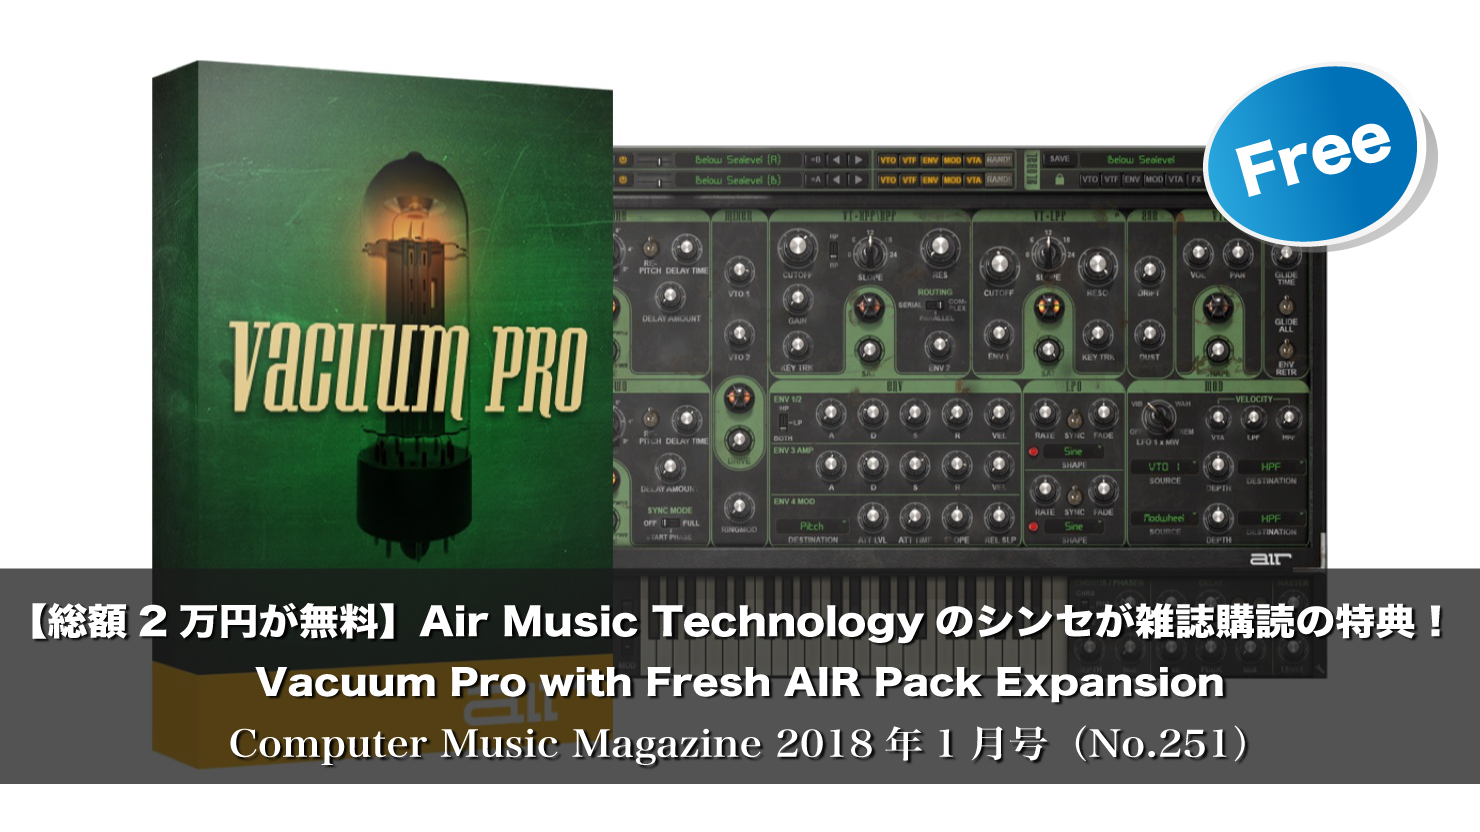 Air Music Technologyのシンセ Vacuum Pro with Fresh AIR Pack Expansionが雑誌購読の特典!